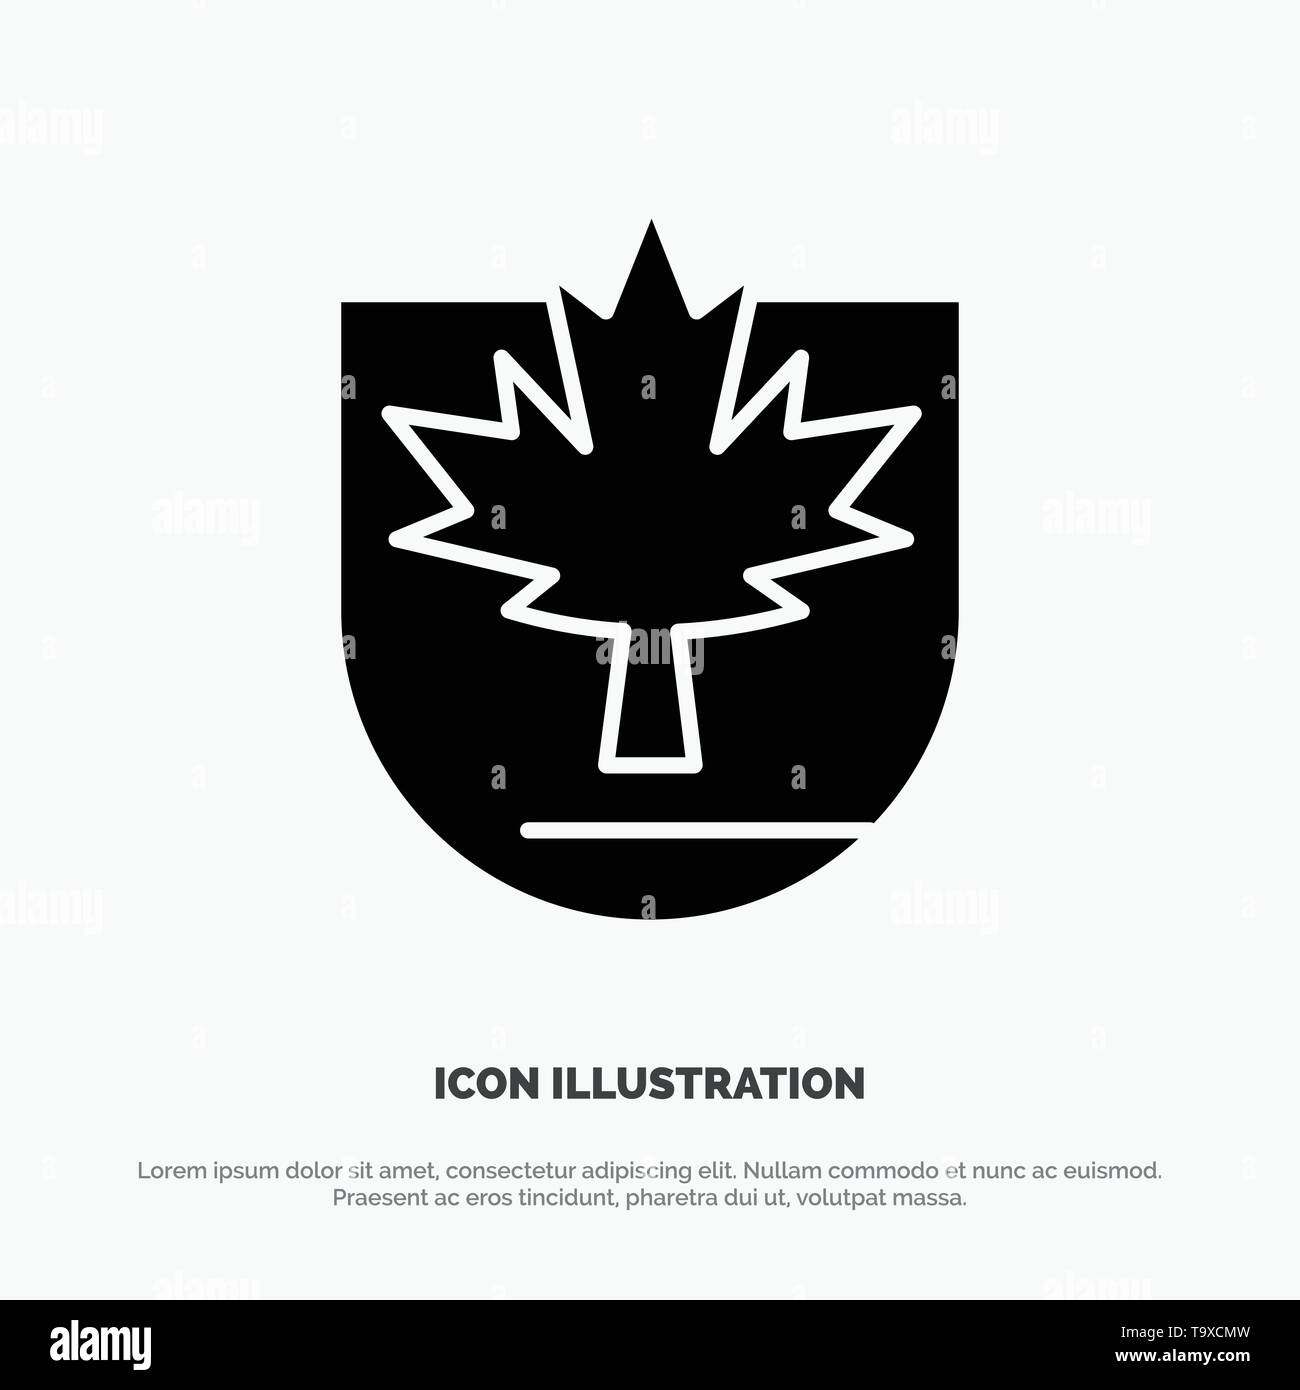 Security, Leaf, Canada, Shield solid Glyph Icon vector - Stock Image